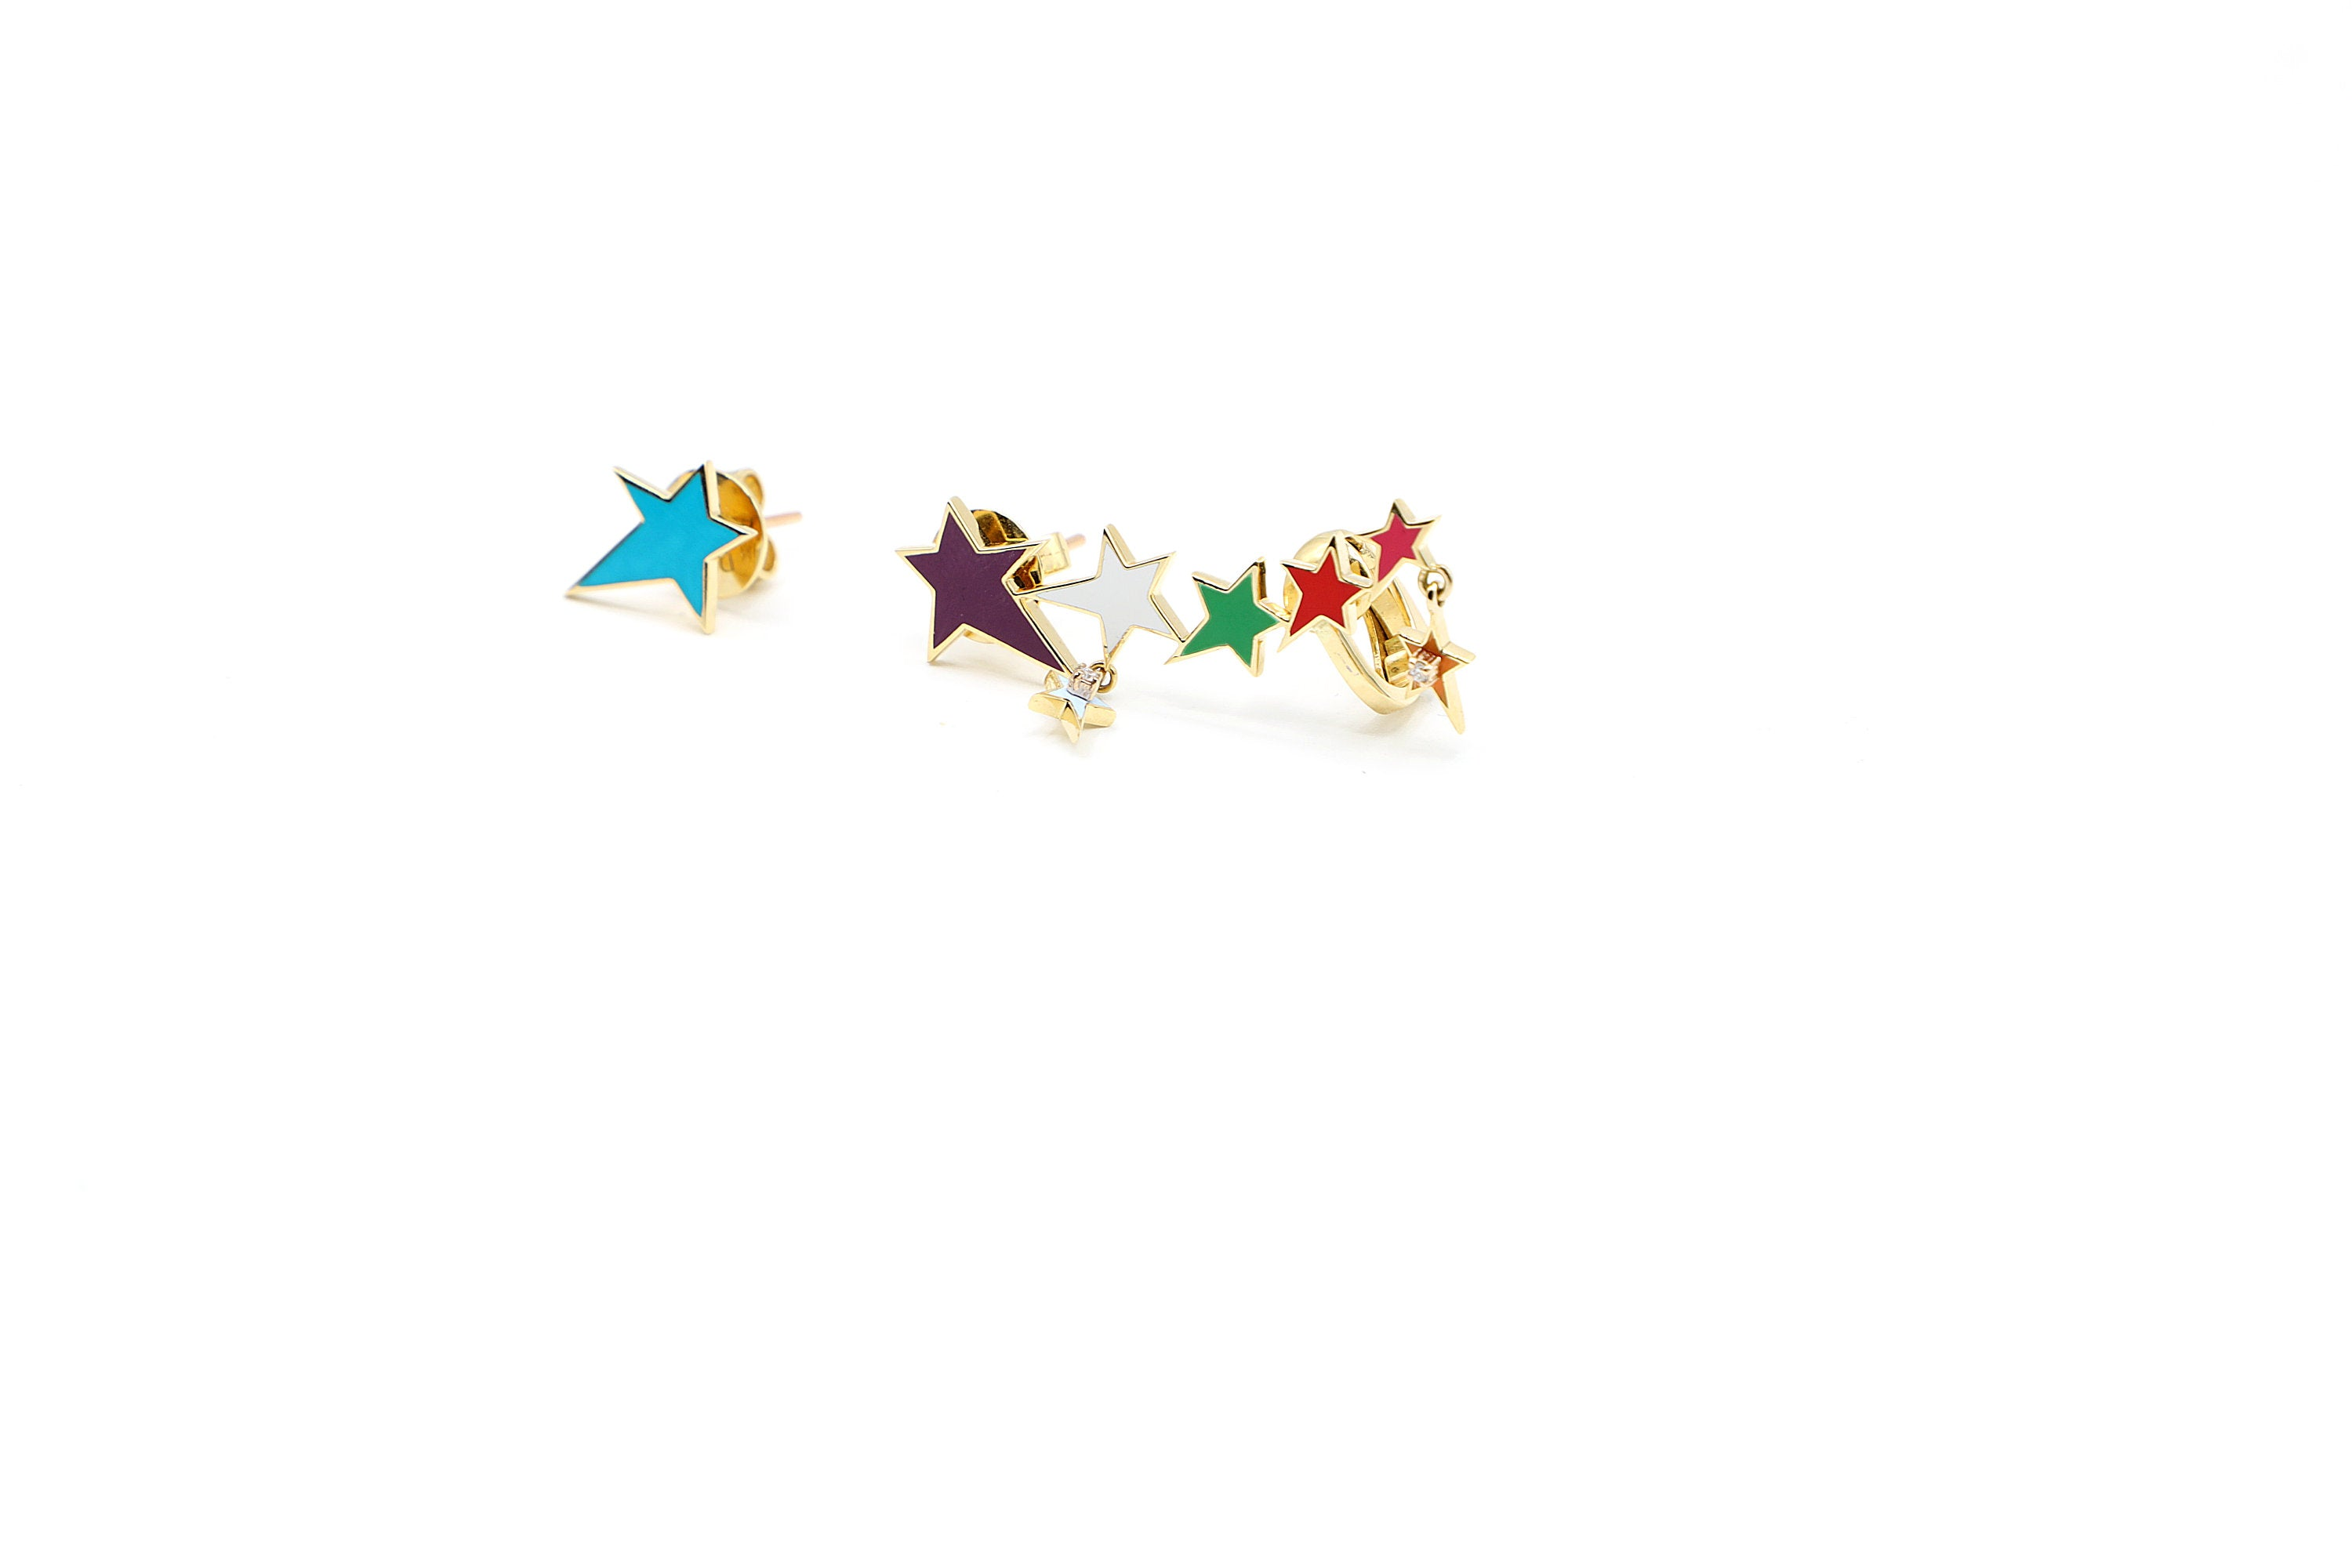 18K Rose Gold & Diamonds Multi-Color Dainty Star Ear Climber